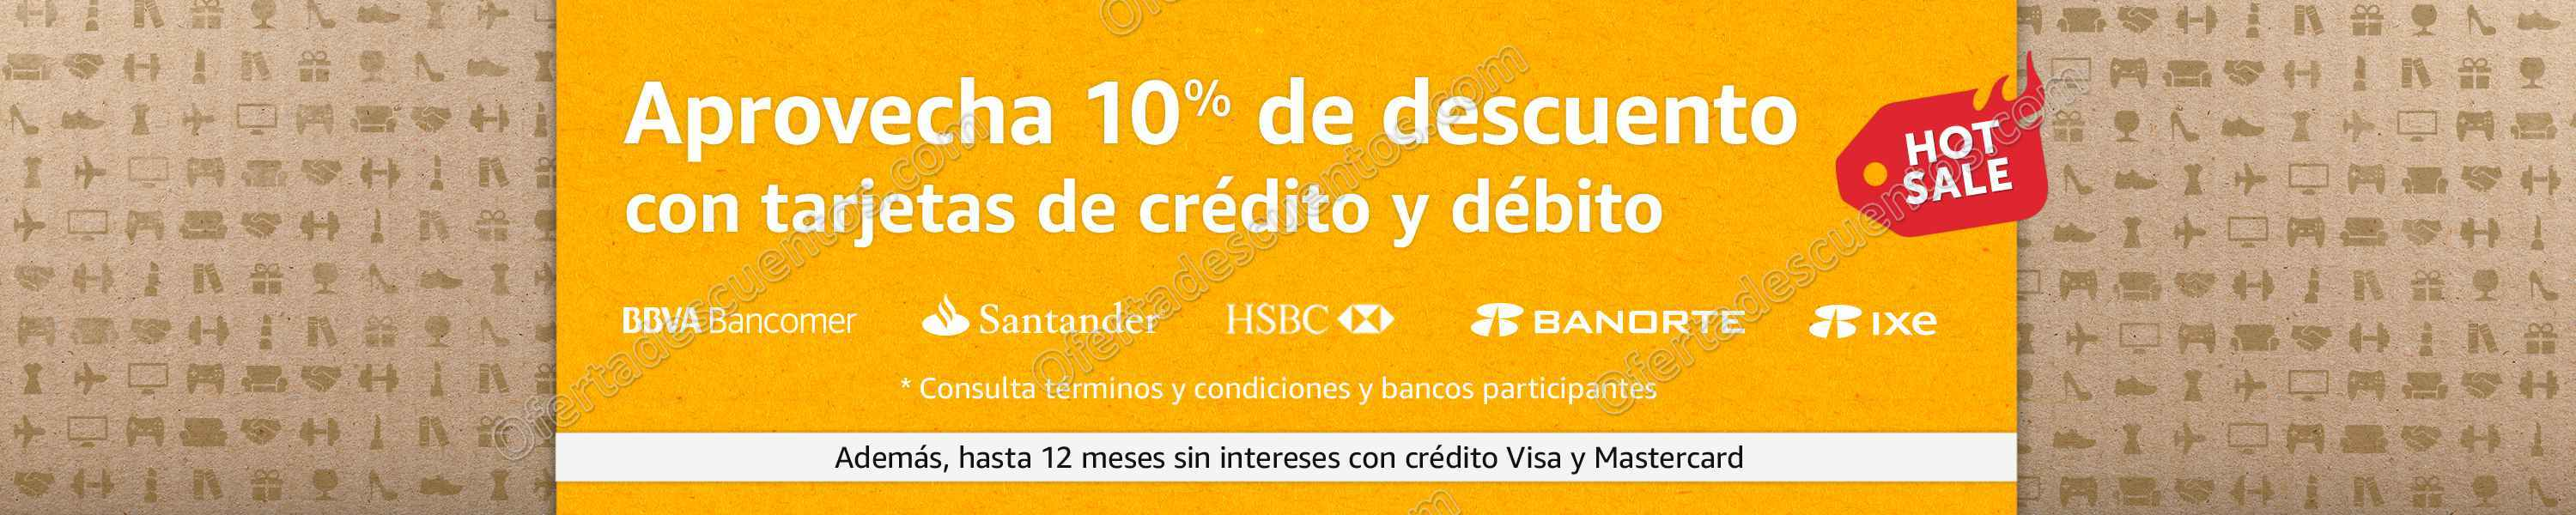 Promociones Hot Sale Amazon 2017